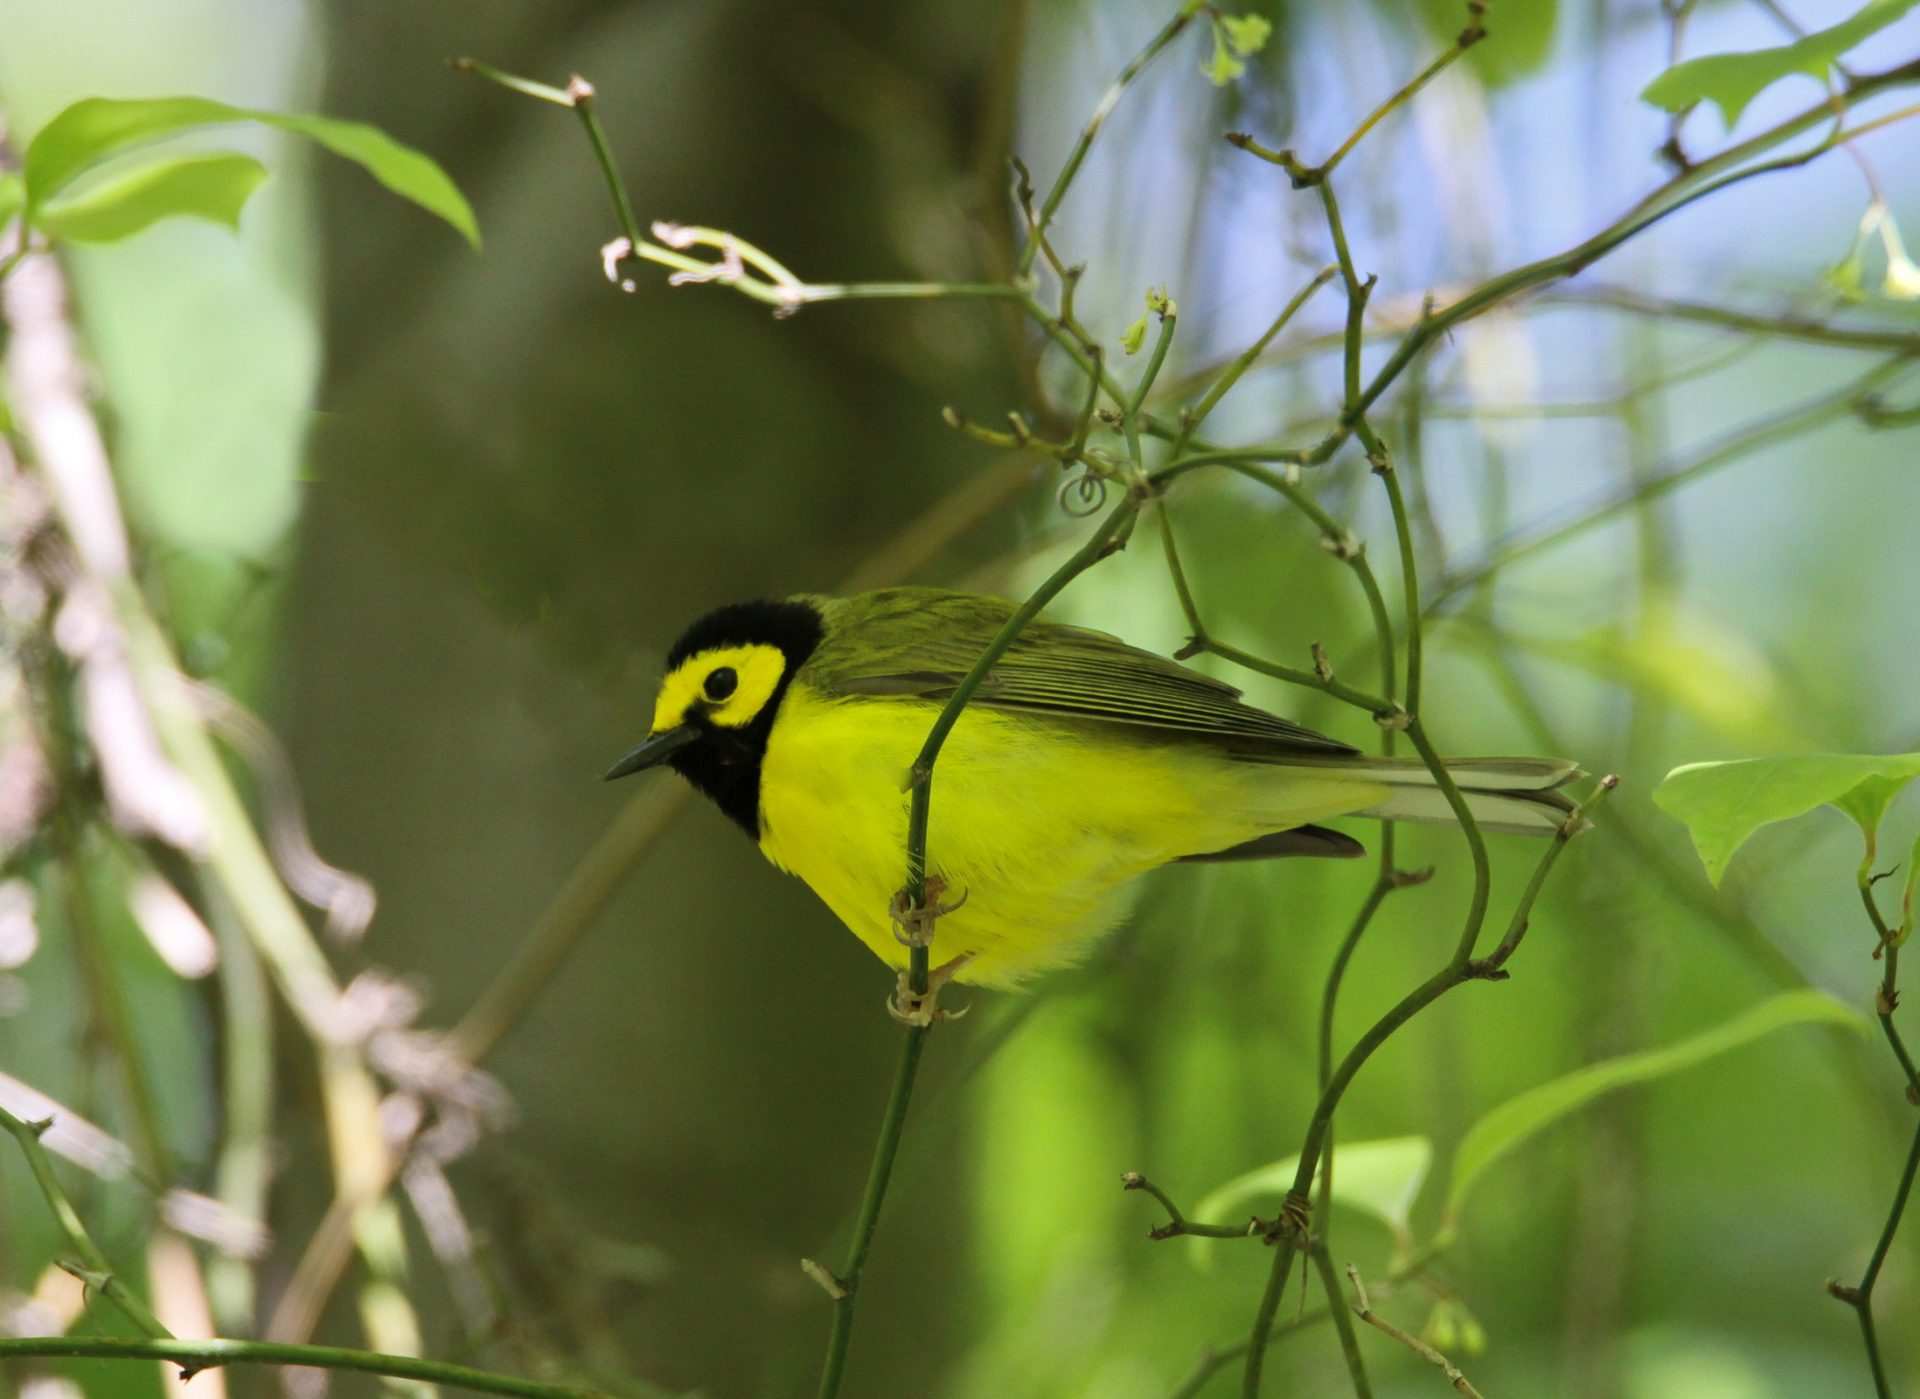 Hooded Warbler. Photo courtesy of John Watts.